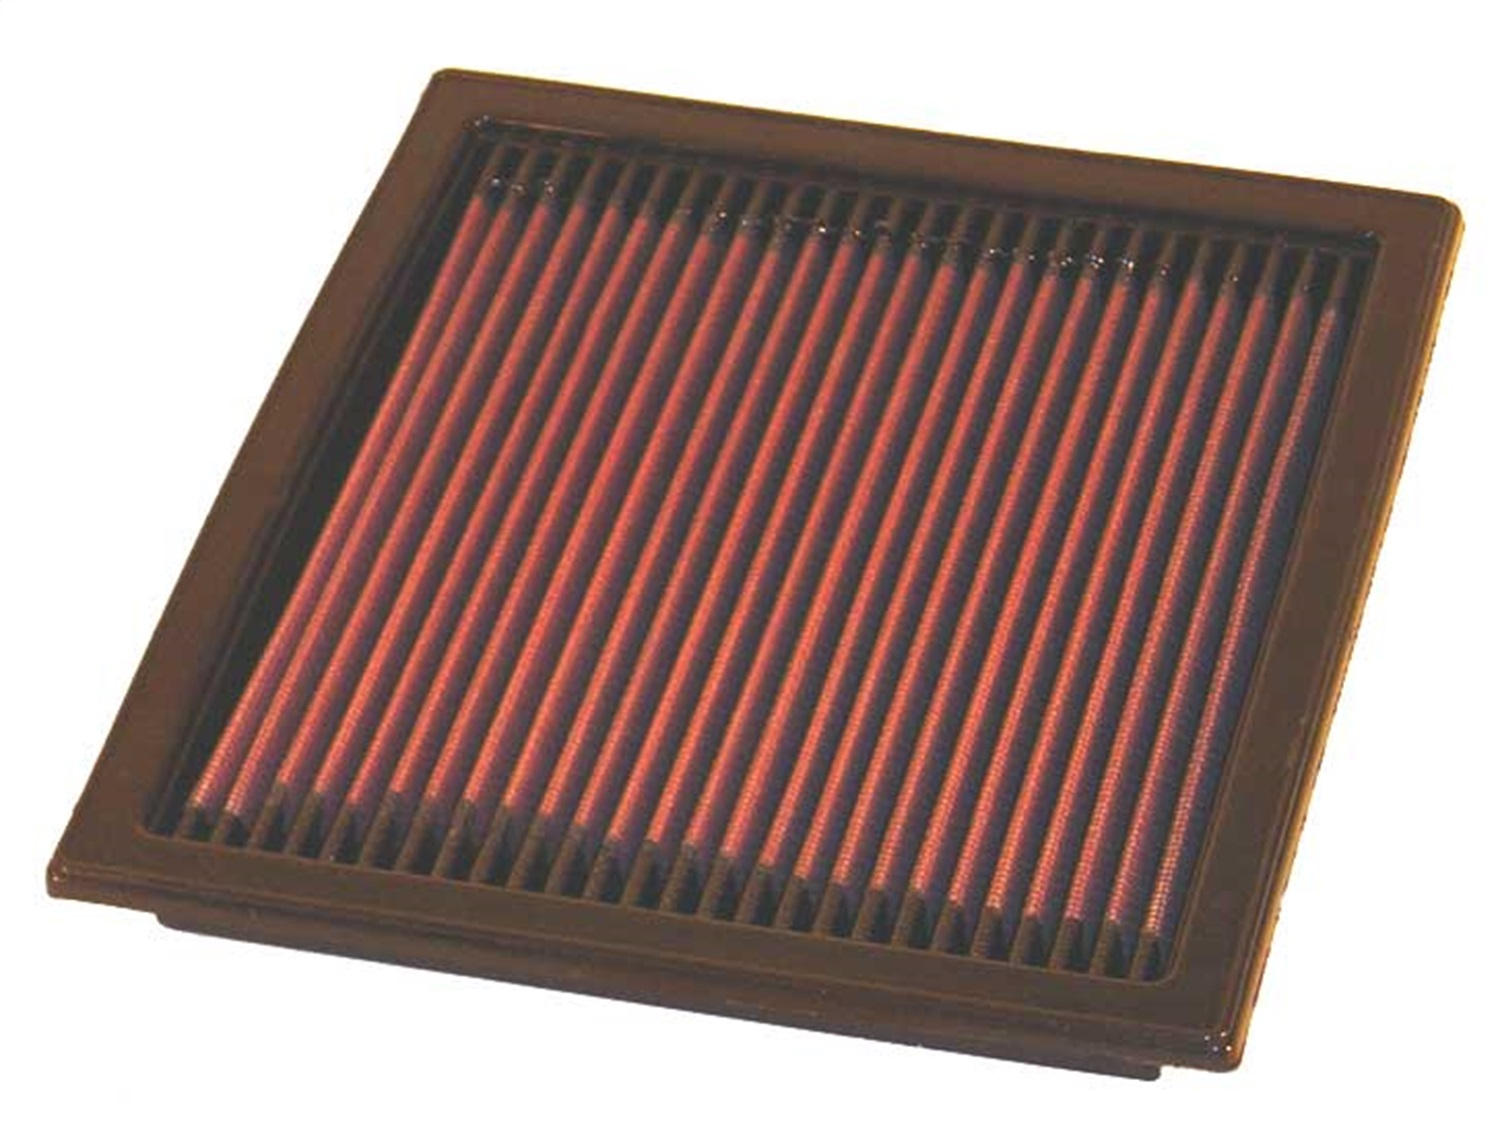 K&N Filters 33-2073 Air Filter Fits 93-98 Mark VIII 33-2073